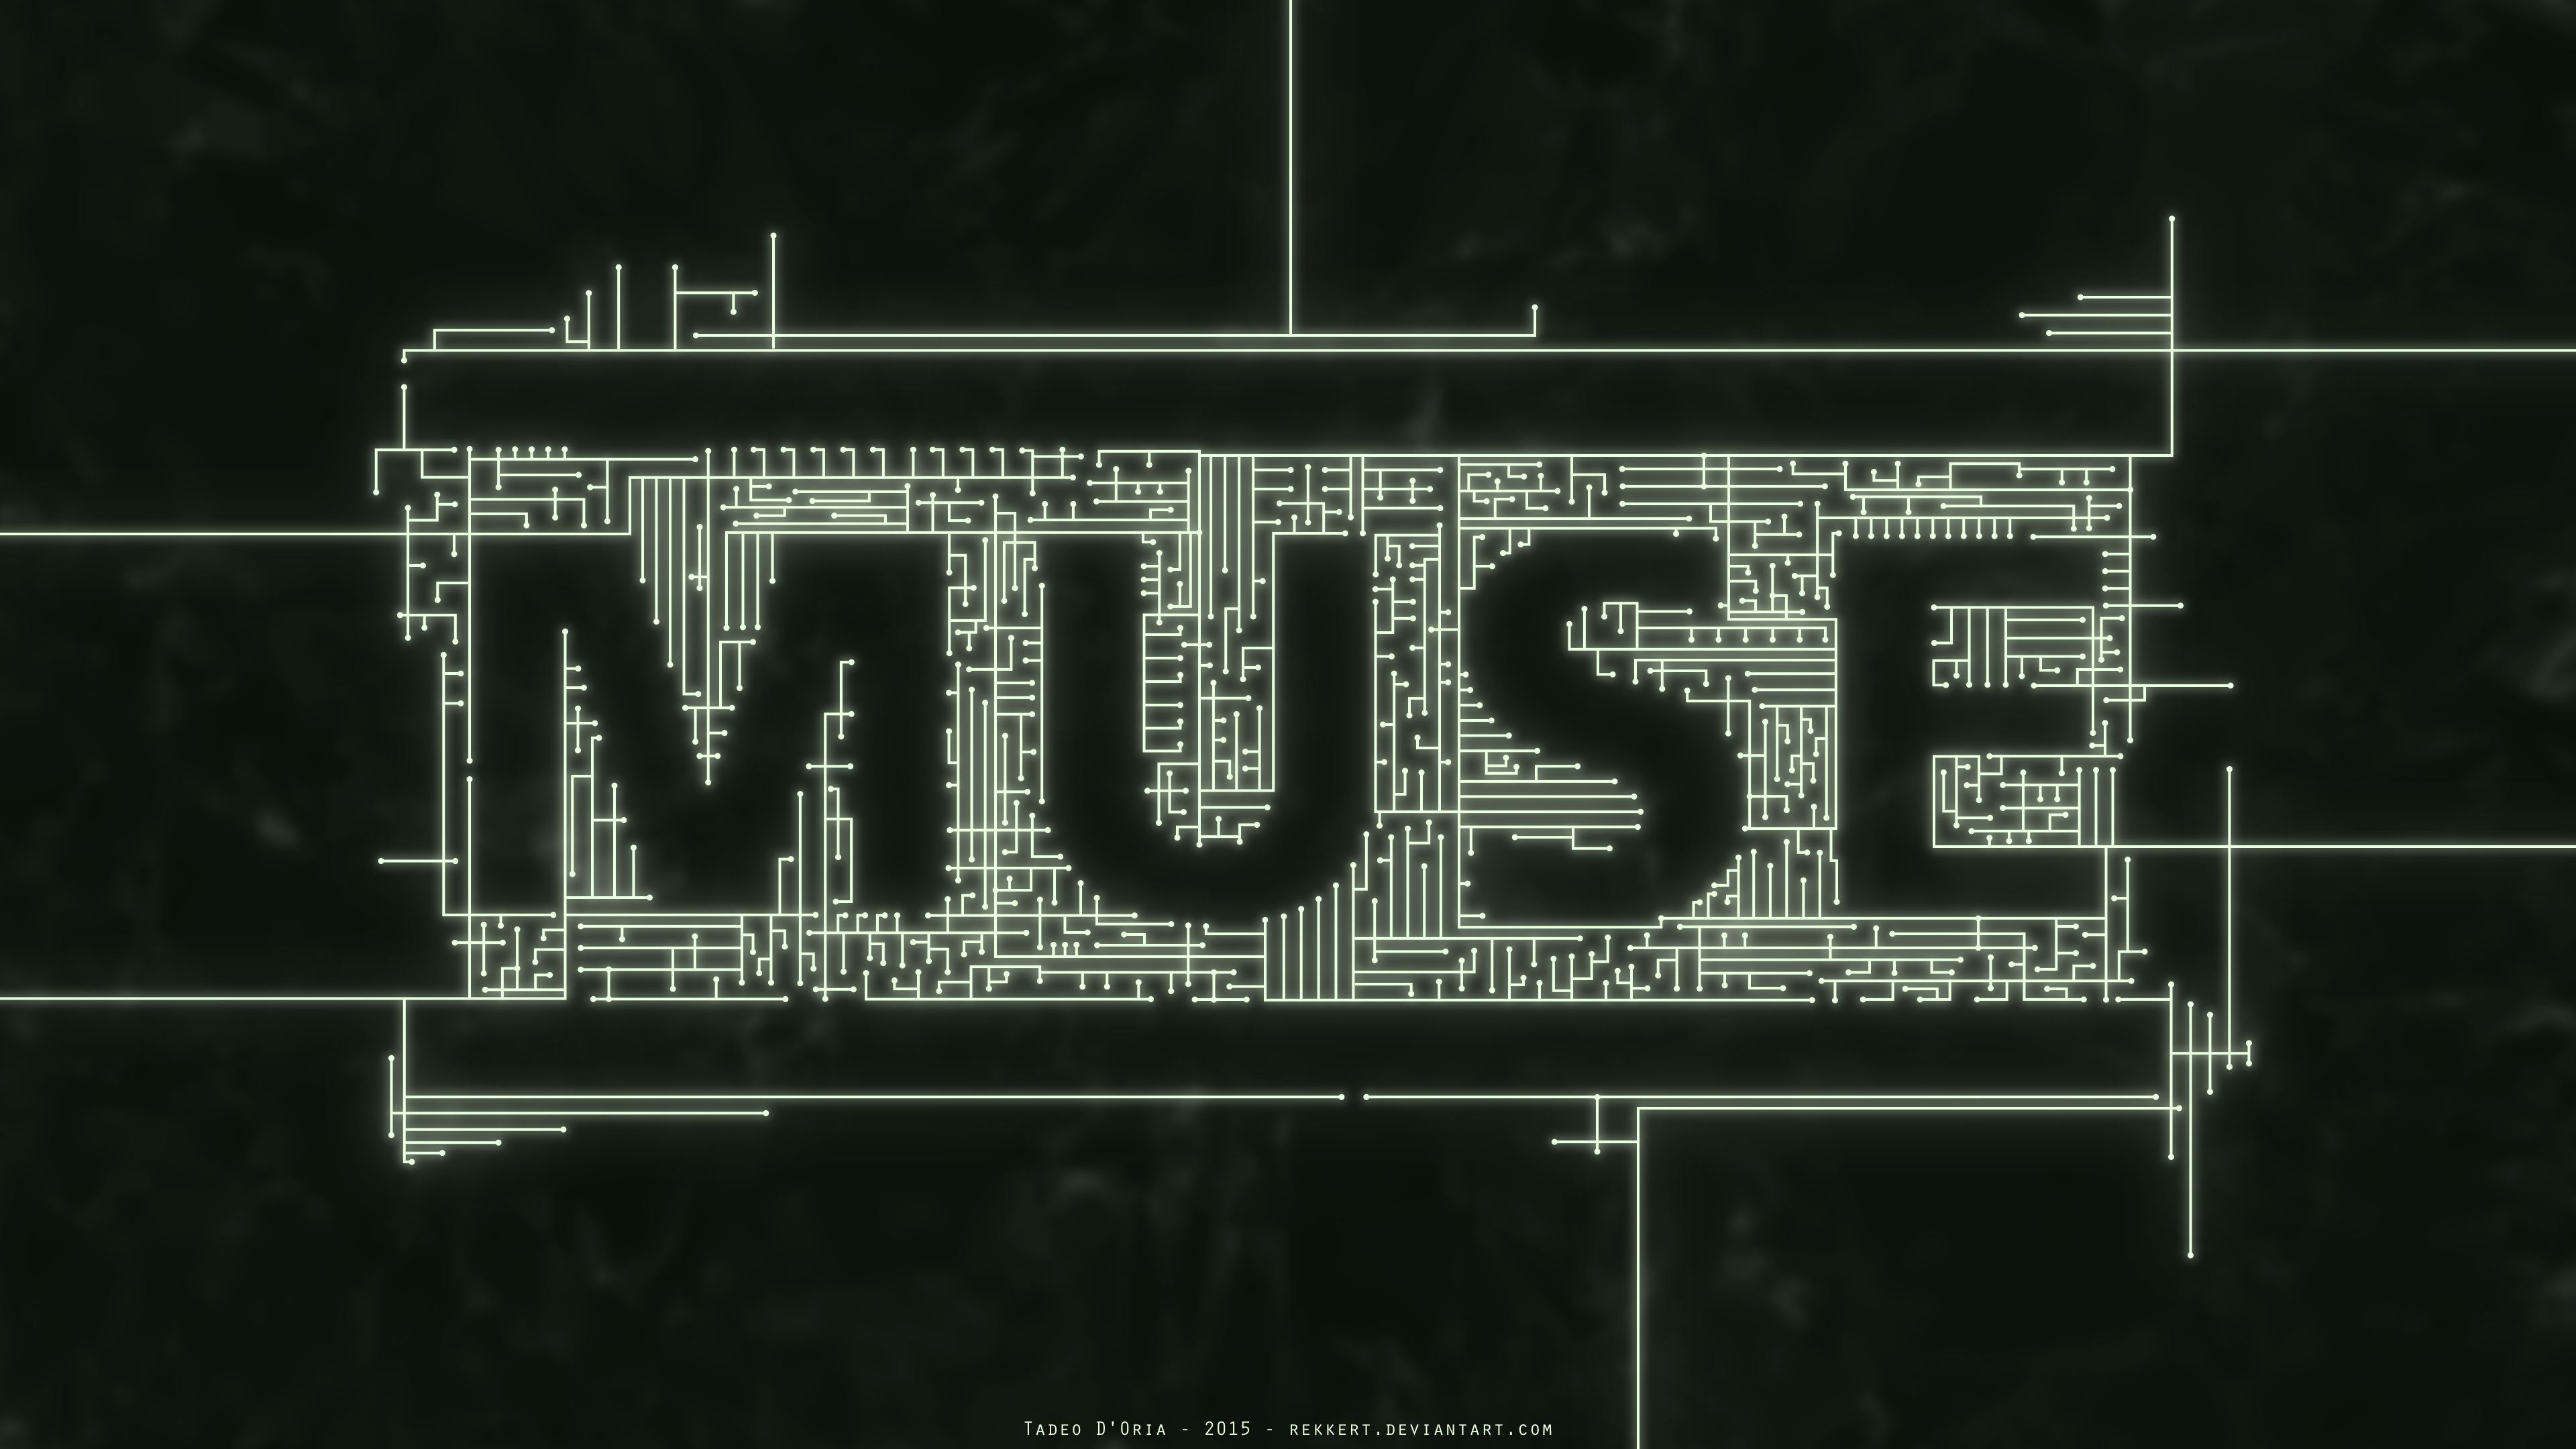 Best muse wallpapers wide hdq cover pics collection muse hd wallpapers desktop pics voltagebd Image collections